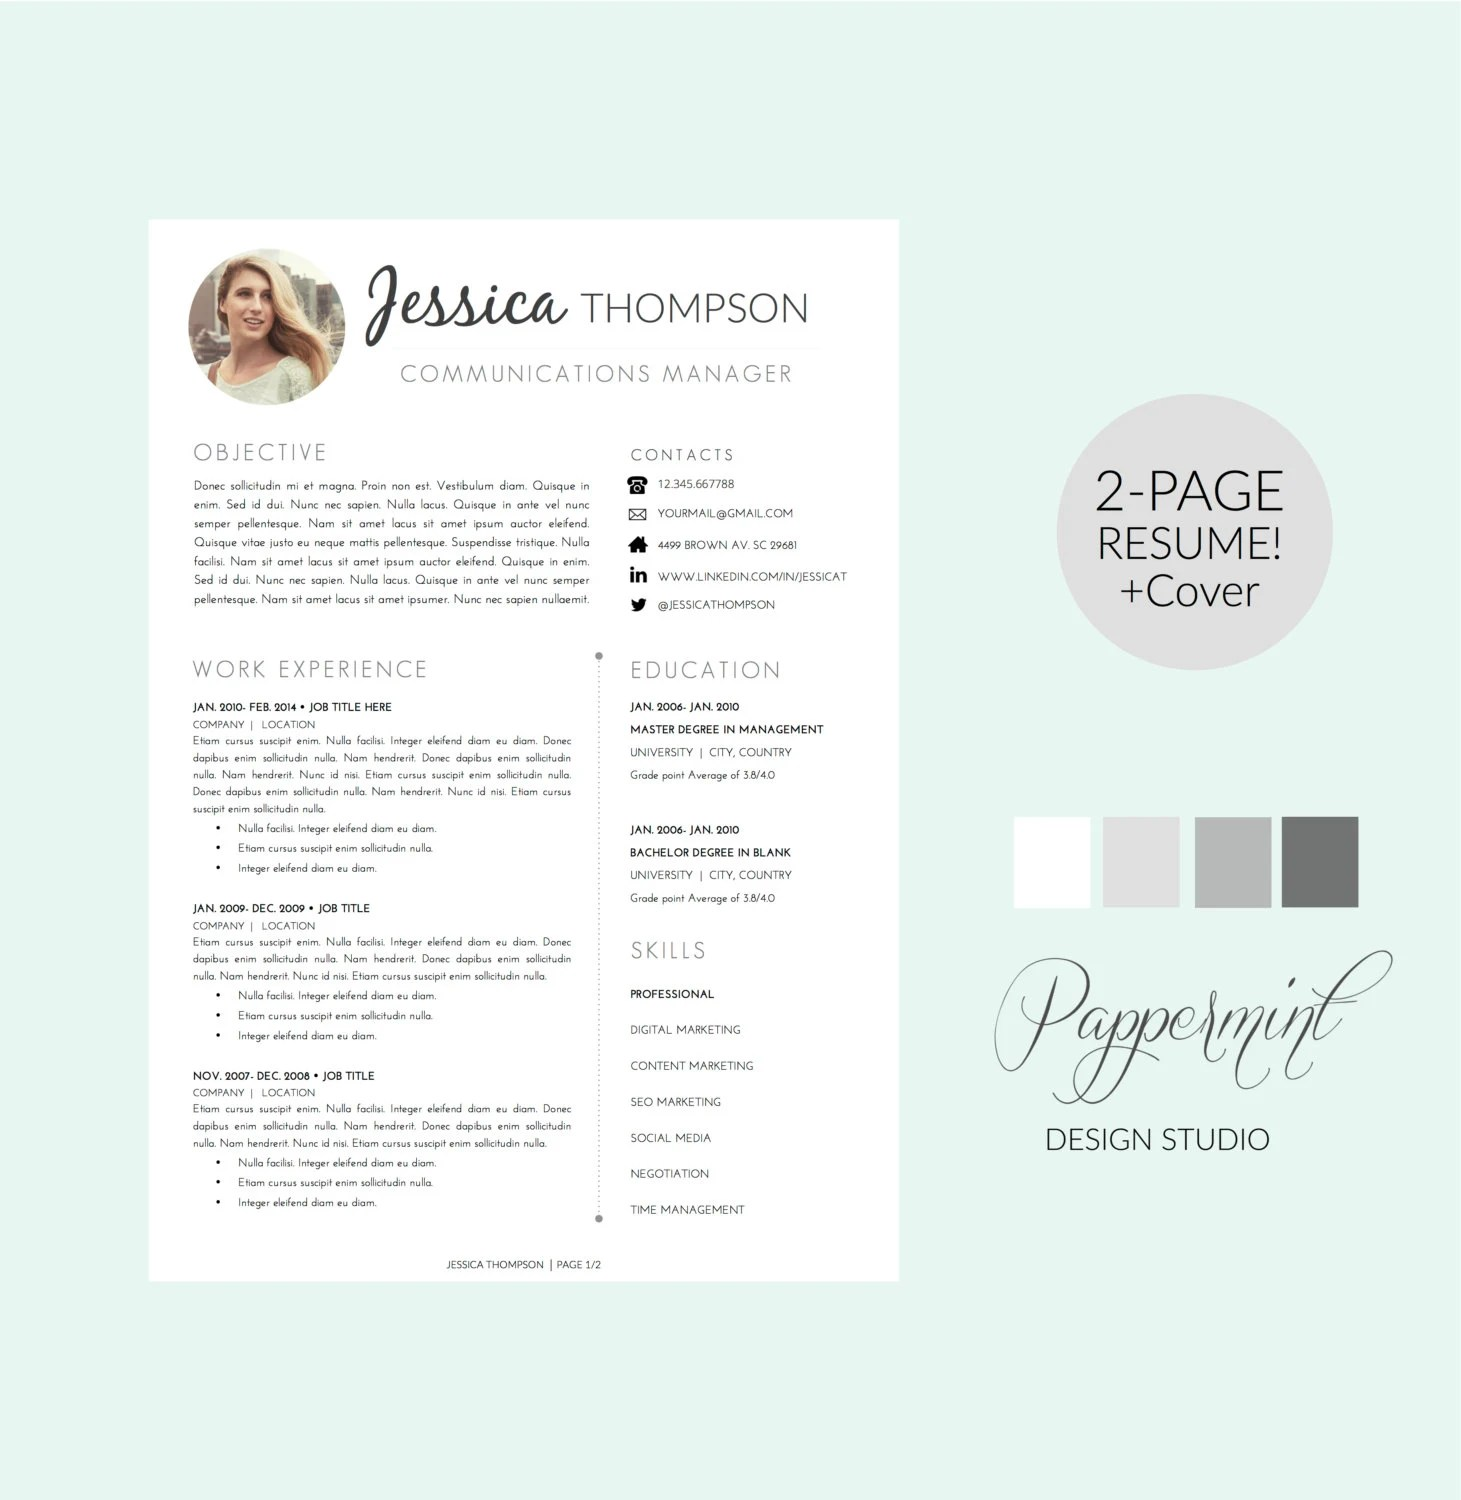 2 Page Resume Sample Resume Template 1 2 Or 3 Pages With Cover Letter And Photo